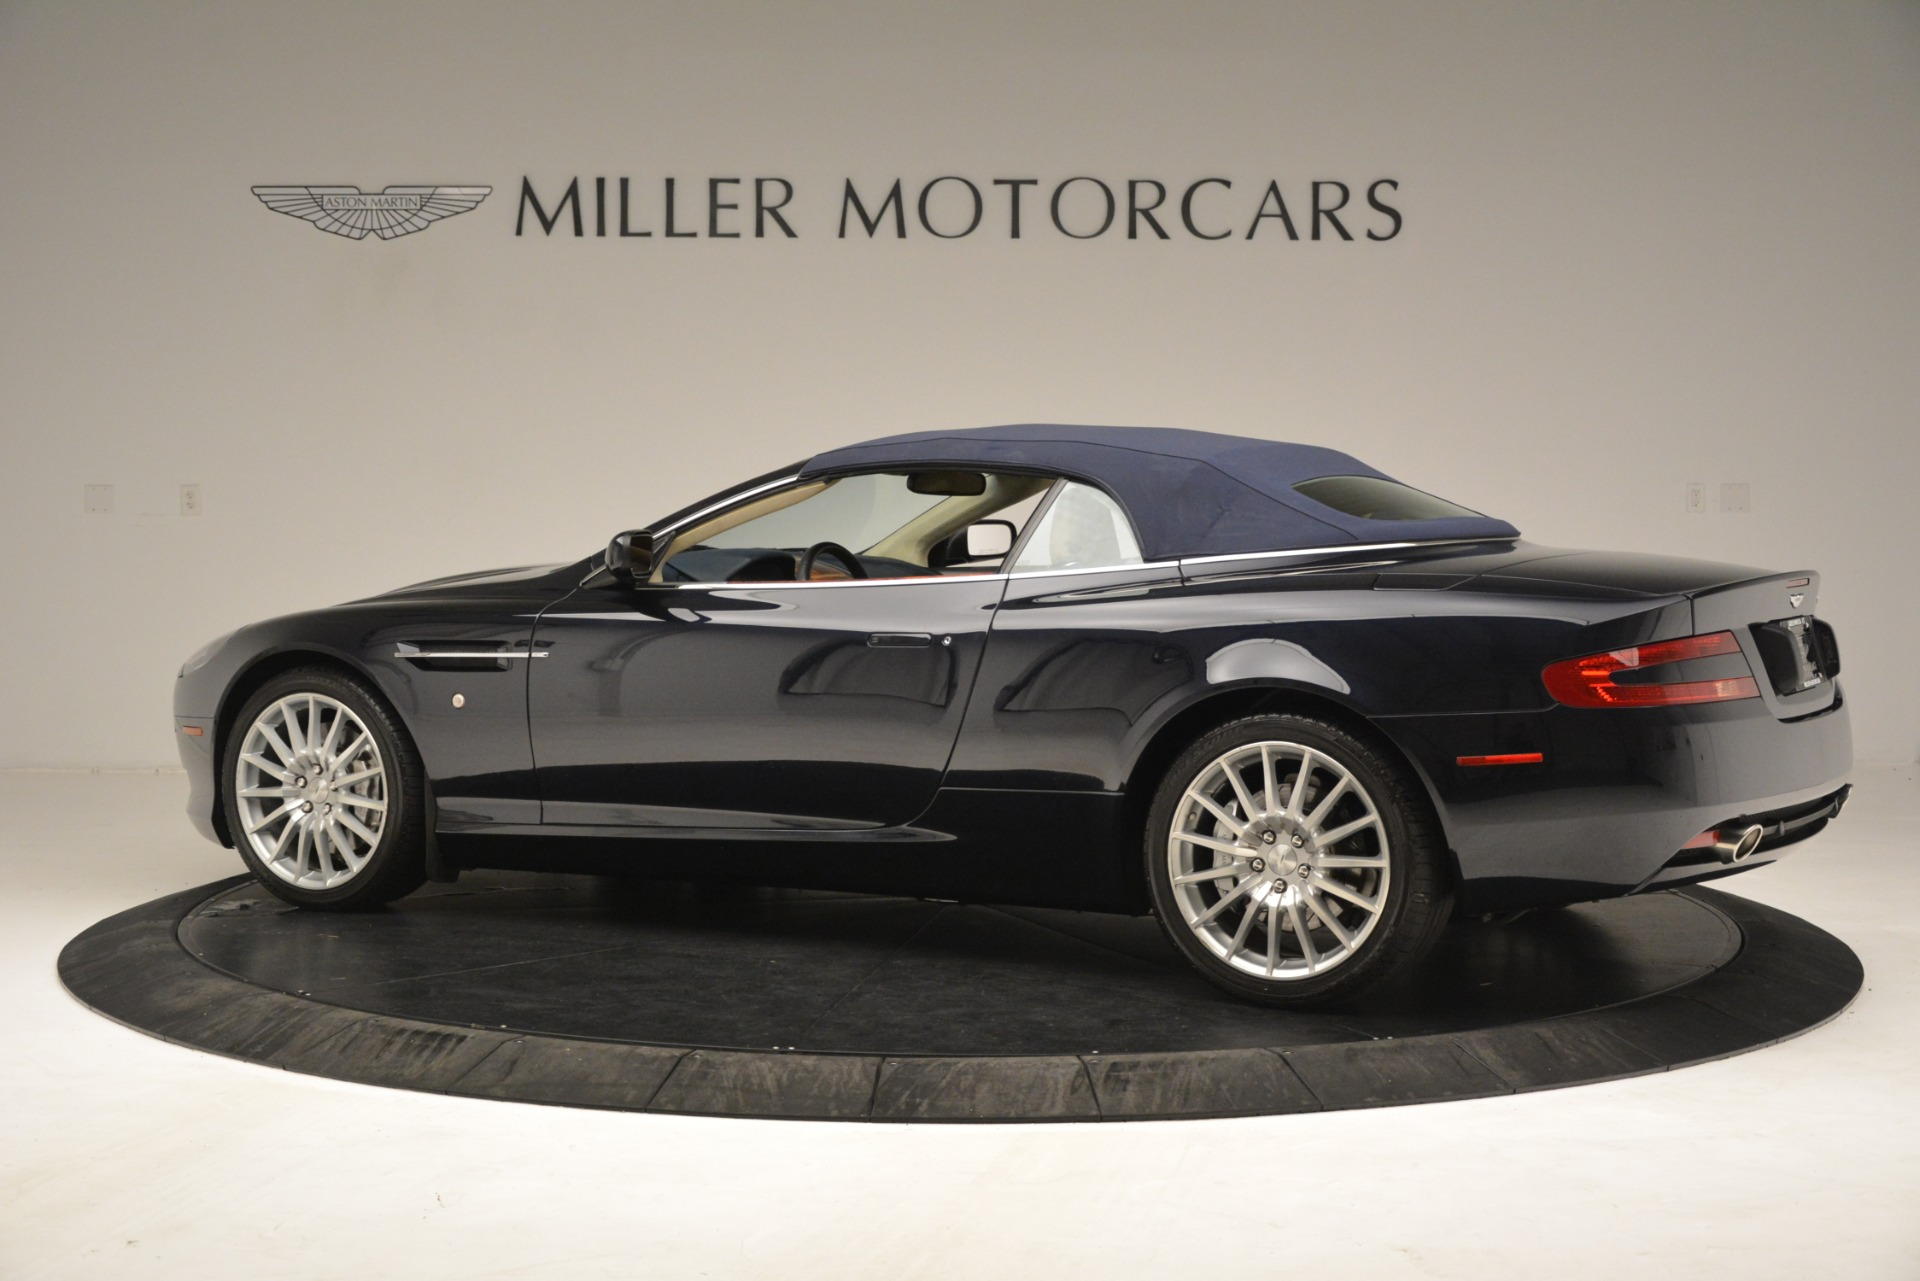 Used 2007 Aston Martin DB9 Convertible For Sale In Westport, CT 3291_p25